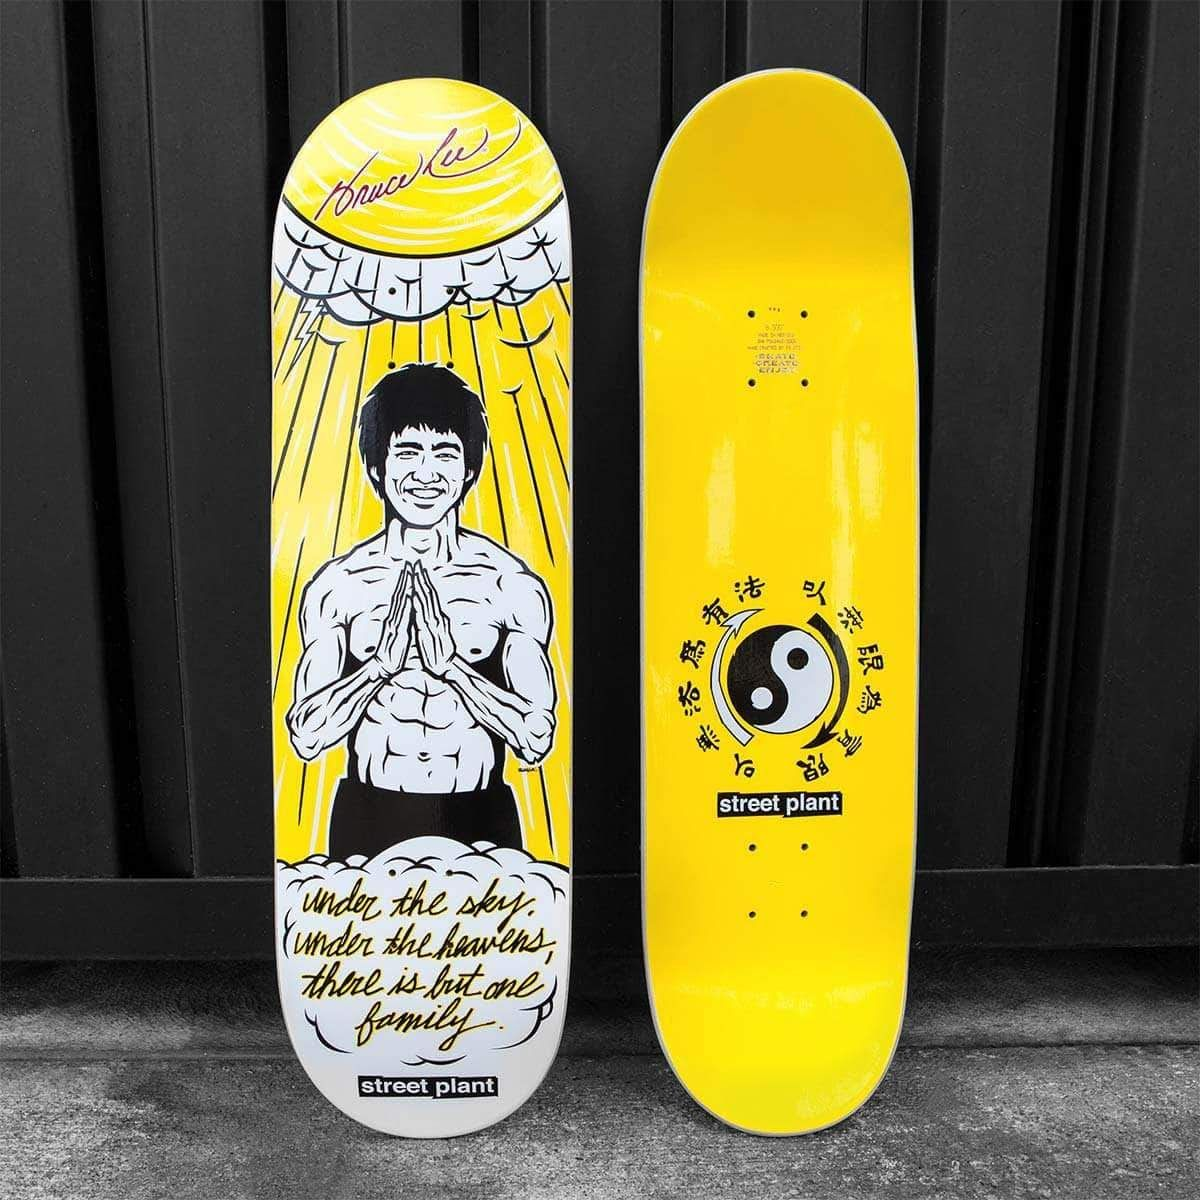 Amazing Collaboration Between The Bruce Lee Family Company And Mike Vallely Introducing The Bruce Lee One Family Skateboard Art Design Skate Decks Bruce Lee